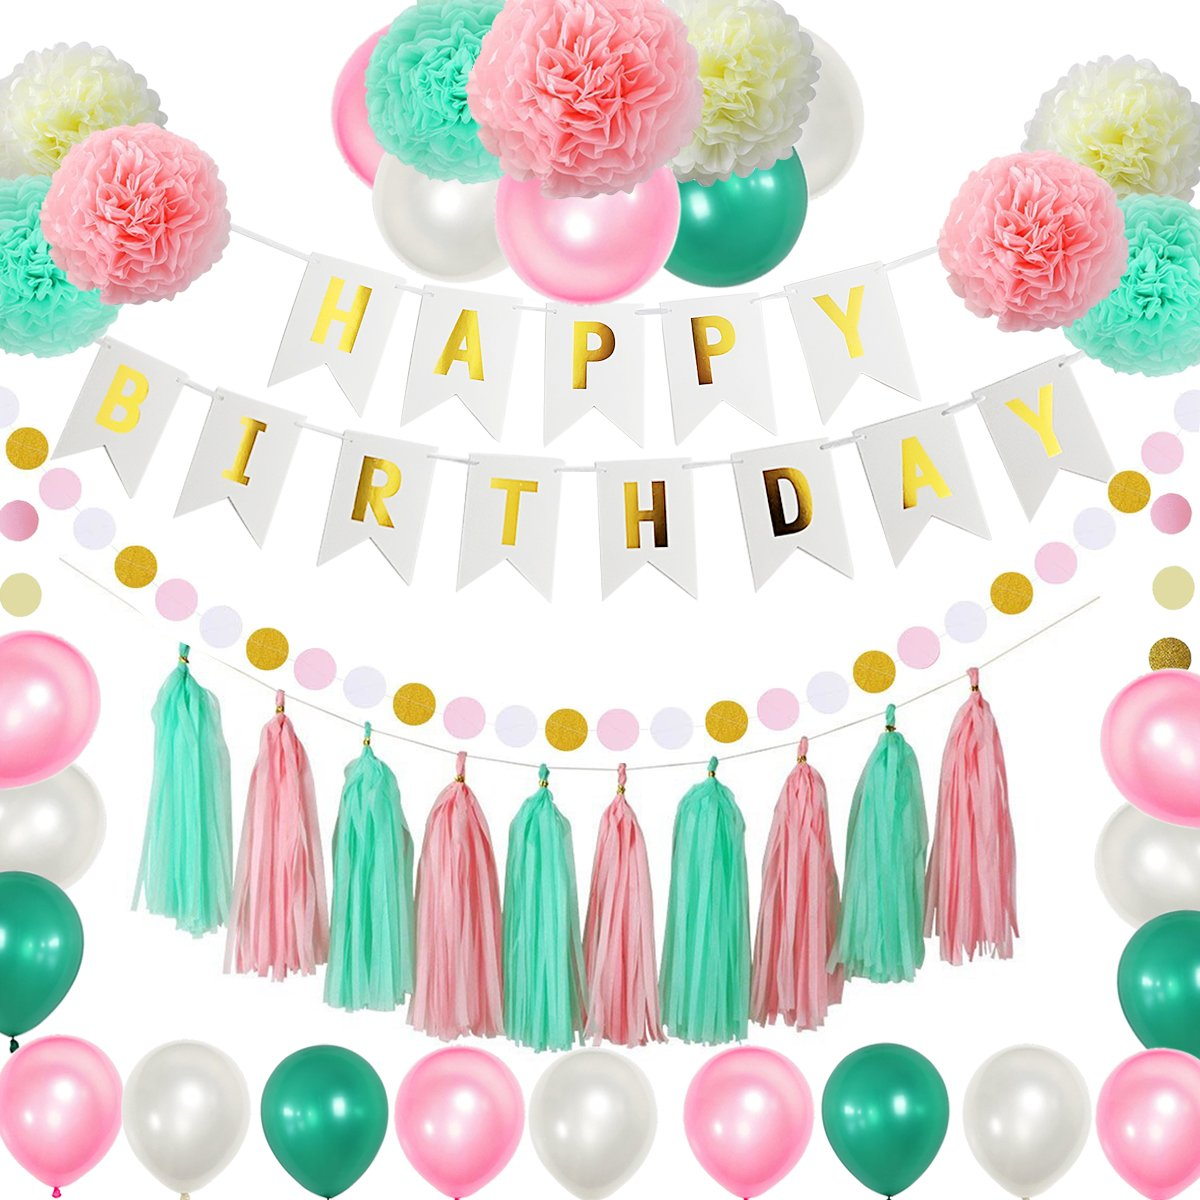 75pcs Pink Mint Birthday Party Decoration Pack - Happy Birthday Banner - 21 Party Balloons -9 Paper Pom Poms - 10 Tassels - Dot Paper Garland Perfect For Girls Birthday Party Baby Wedding Bridal Show by Lillypet